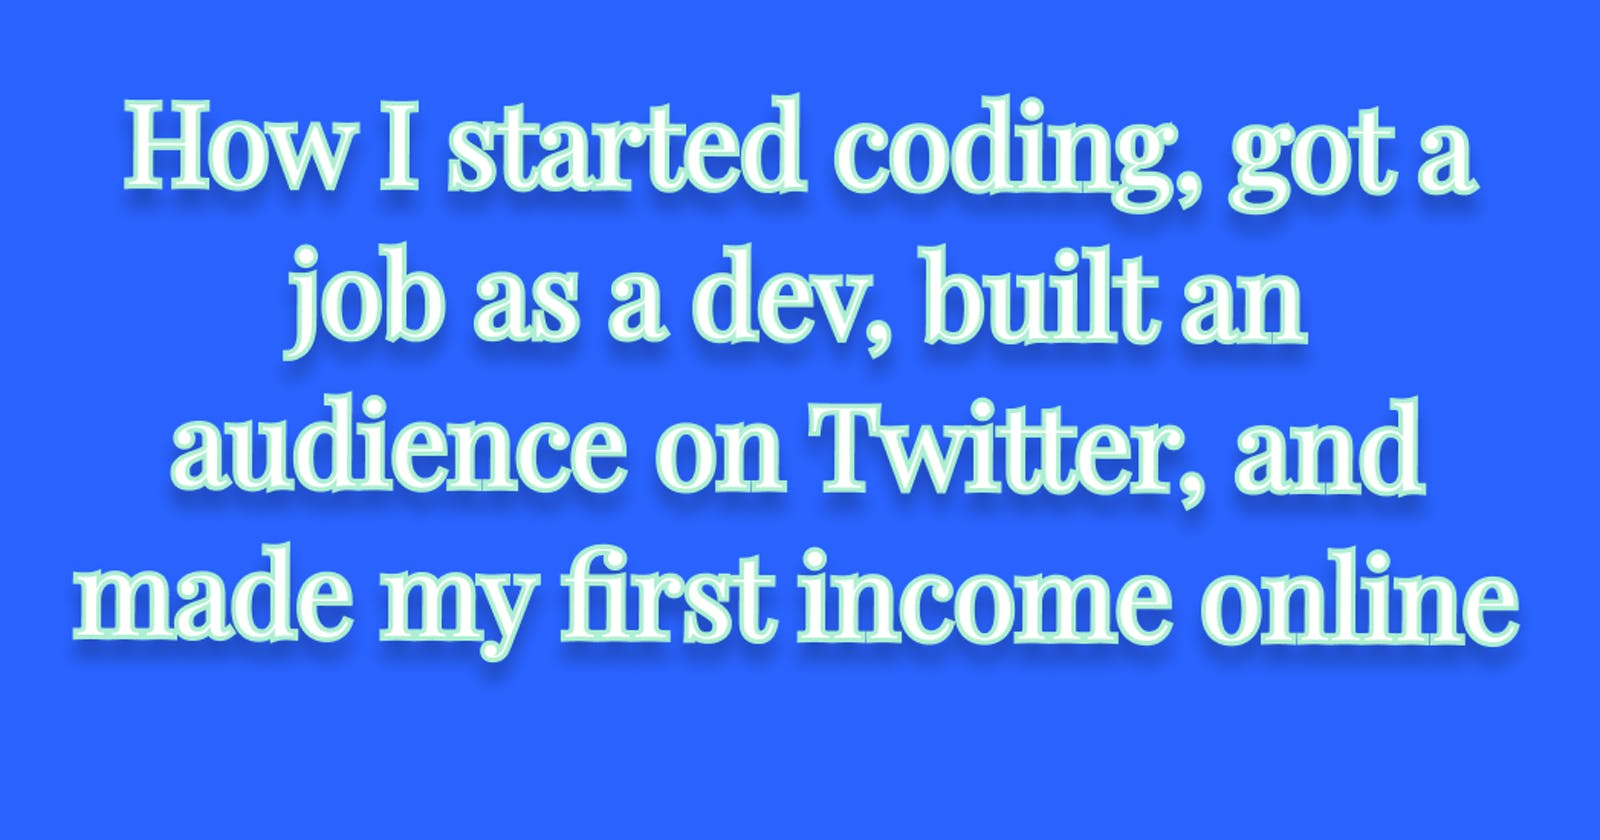 How I started coding, got a job as a dev, built an audience on Twitter, and made my first income online